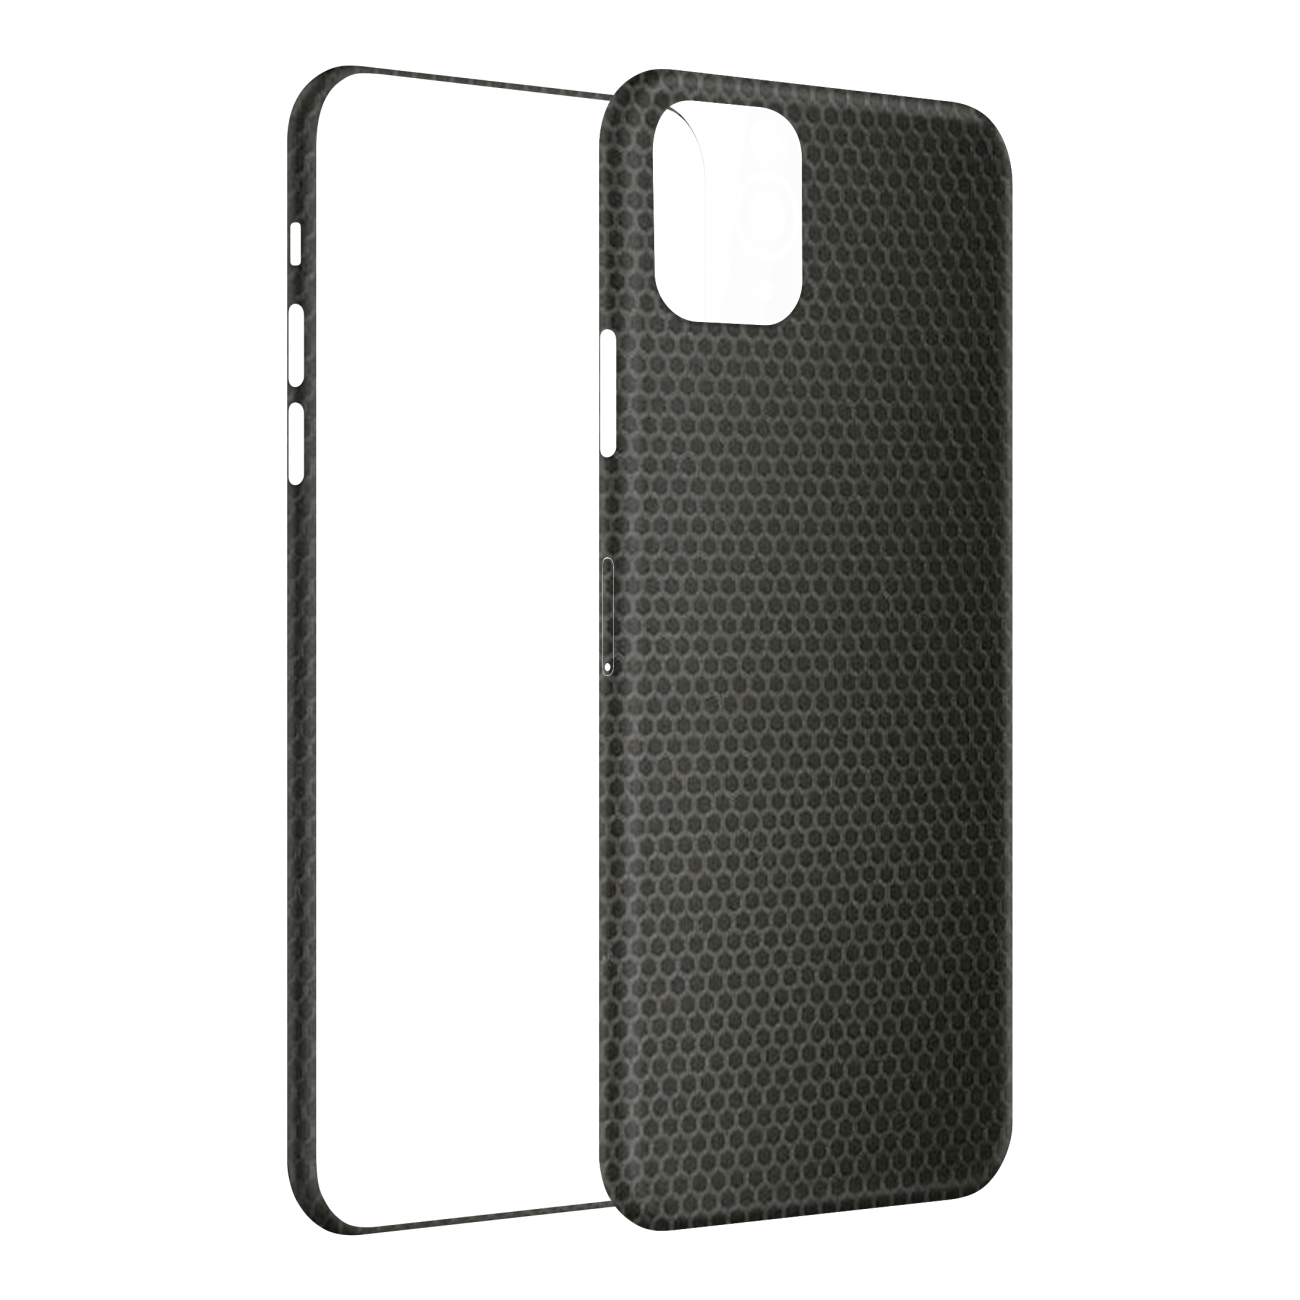 iphone-11-pro-max-skin_full-skin_black-matrix.png